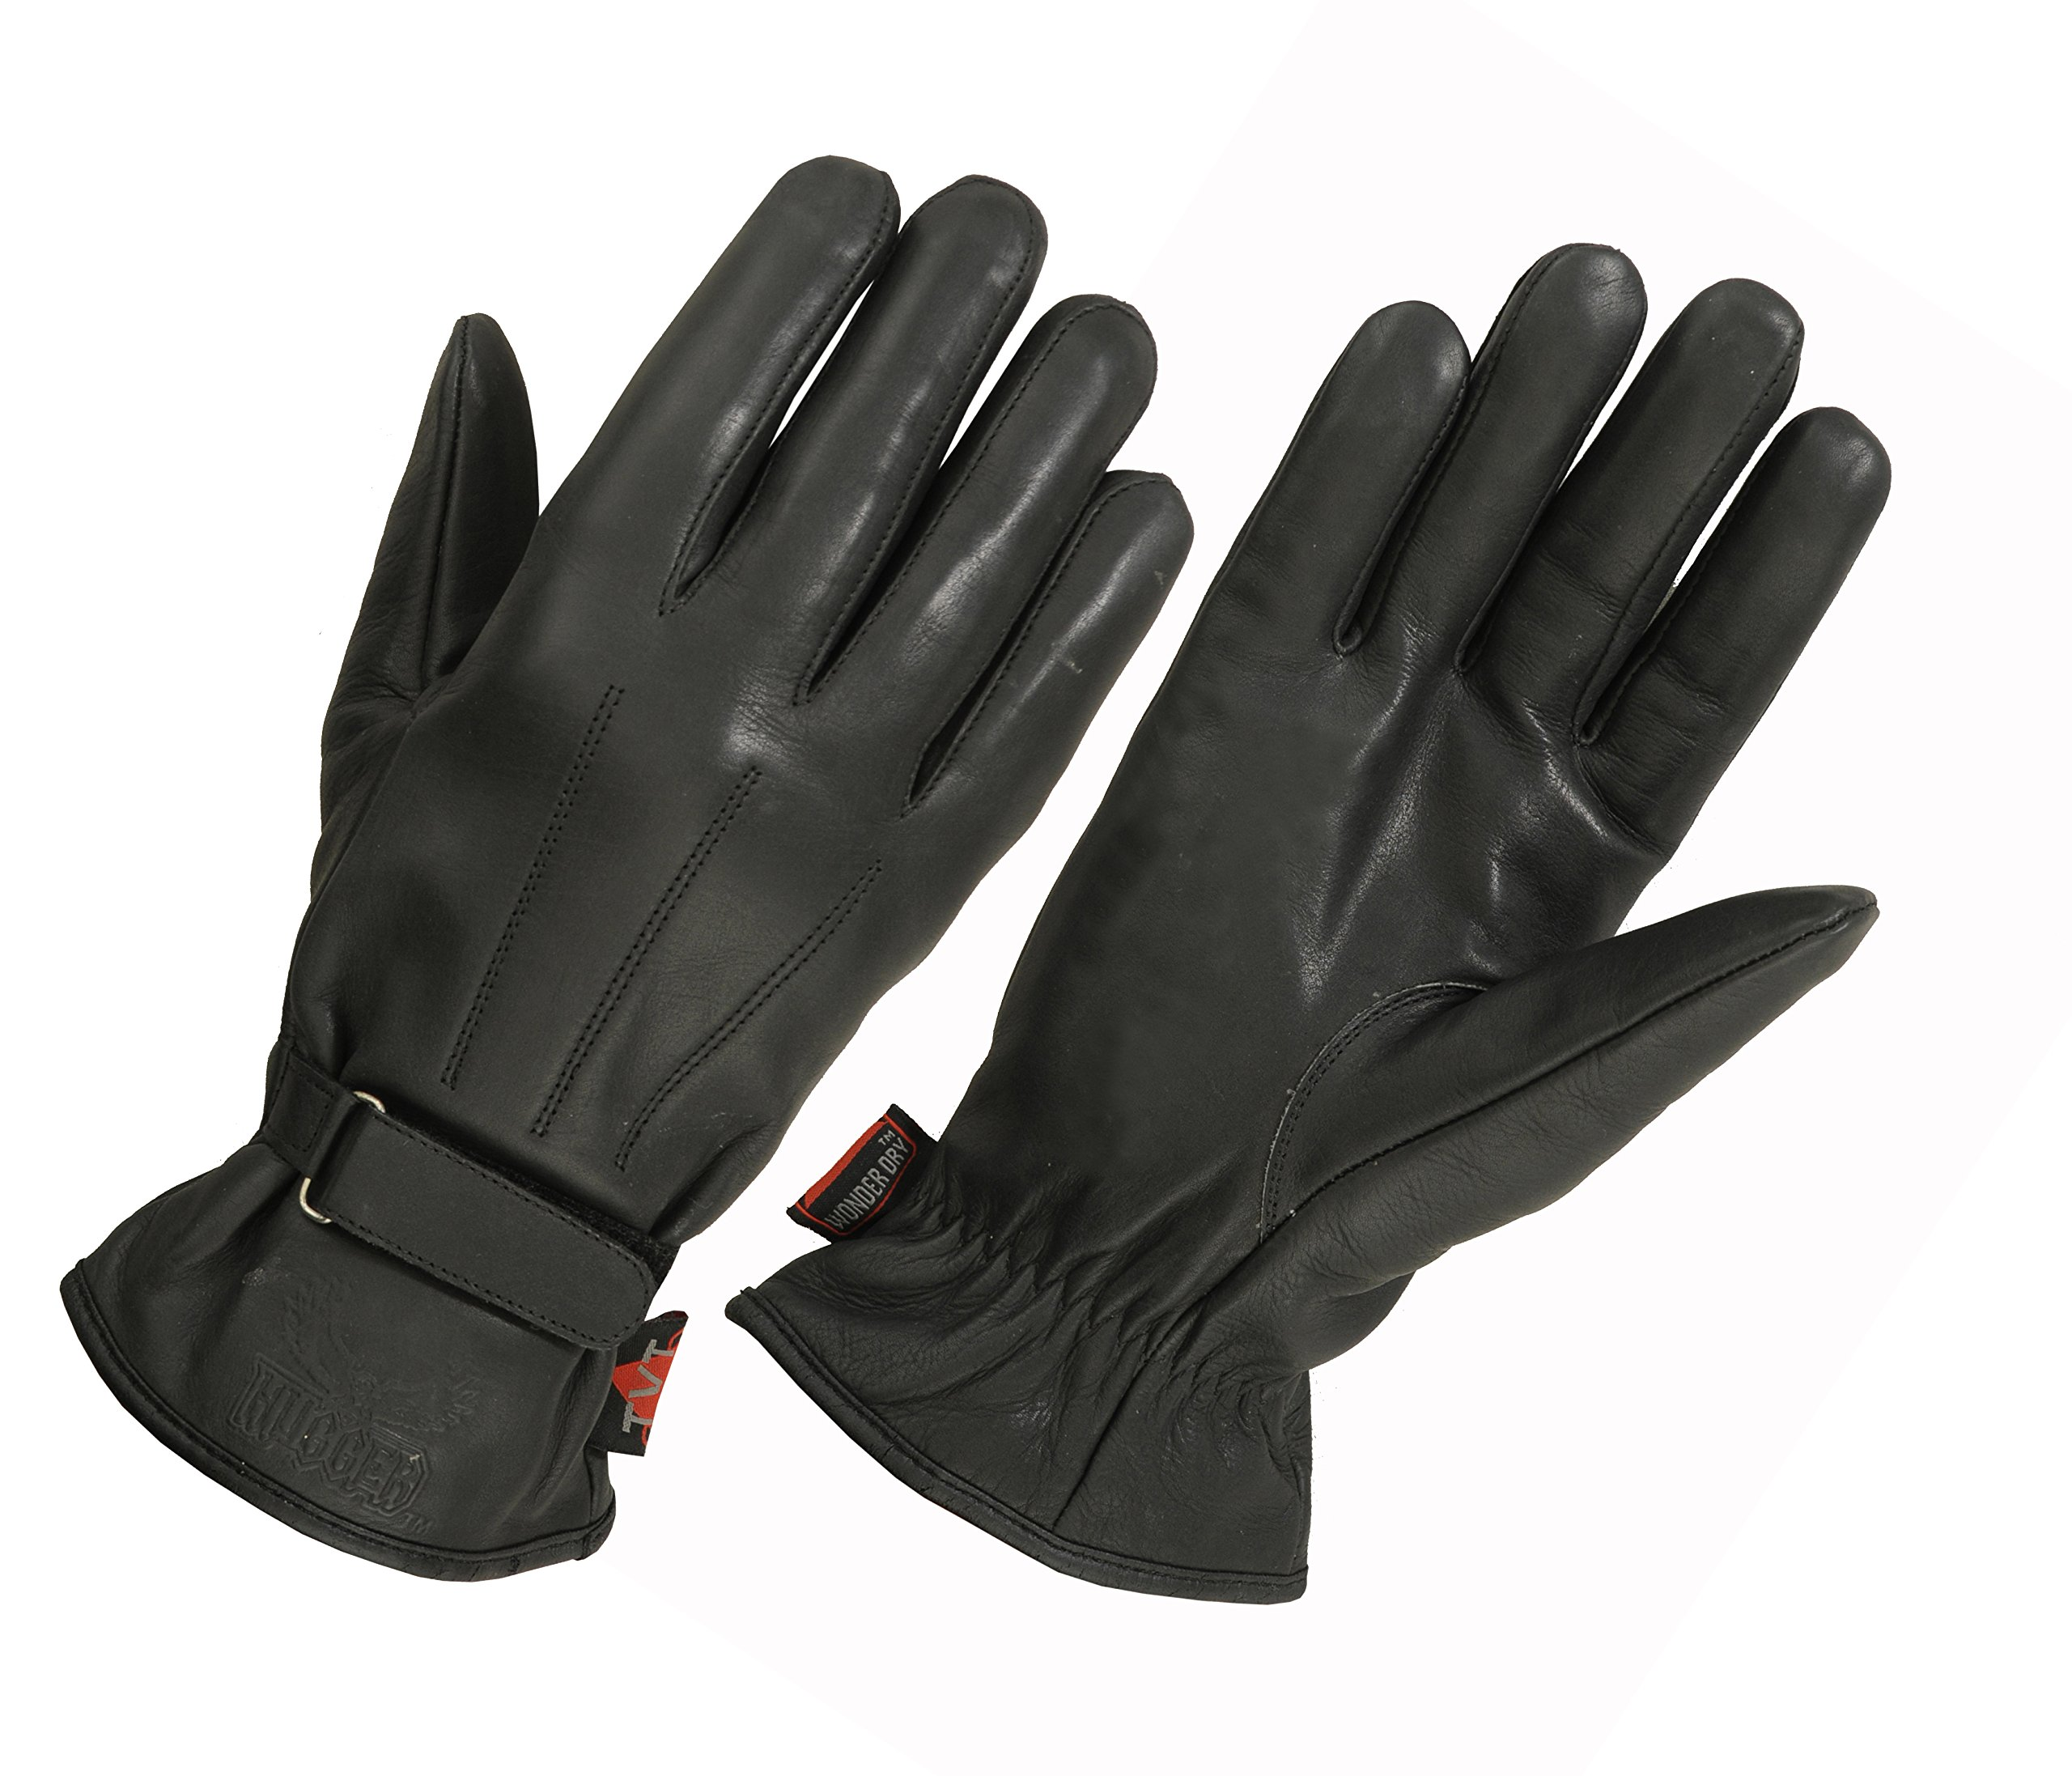 Ladies Water Resistant Leather Lined for Winter Driving Glove, Motorcycles, Classic Style (Small, Black)